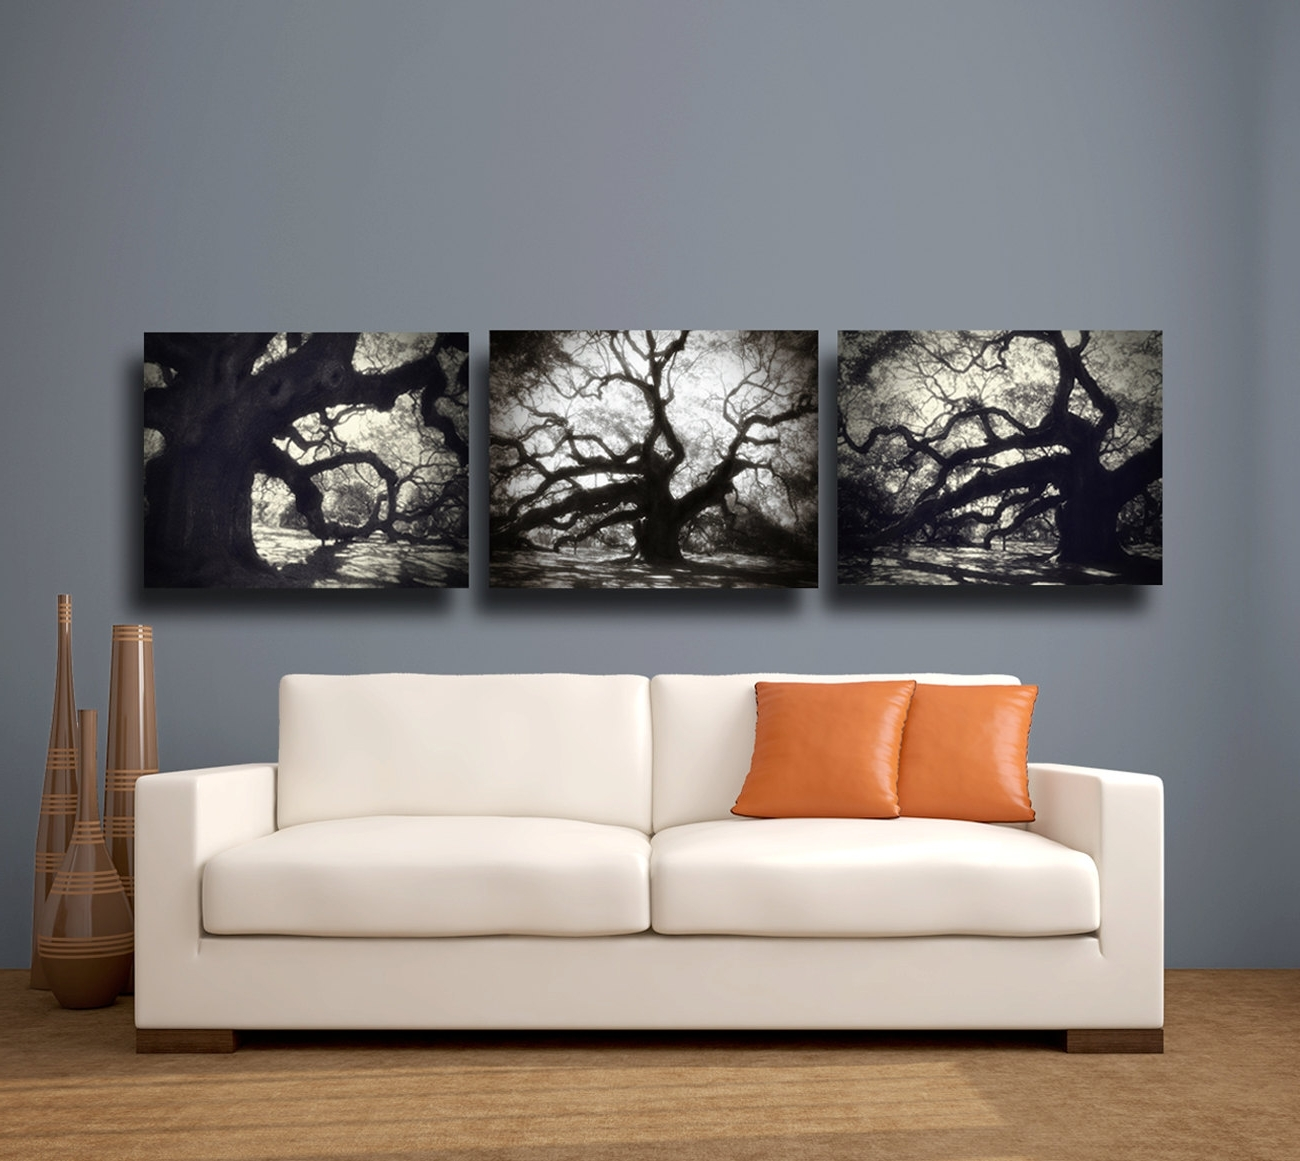 Wall Art Designs: Black And White Canvas Wall Art Astounding With Regard To 2018 Large Black And White Wall Art (View 13 of 15)